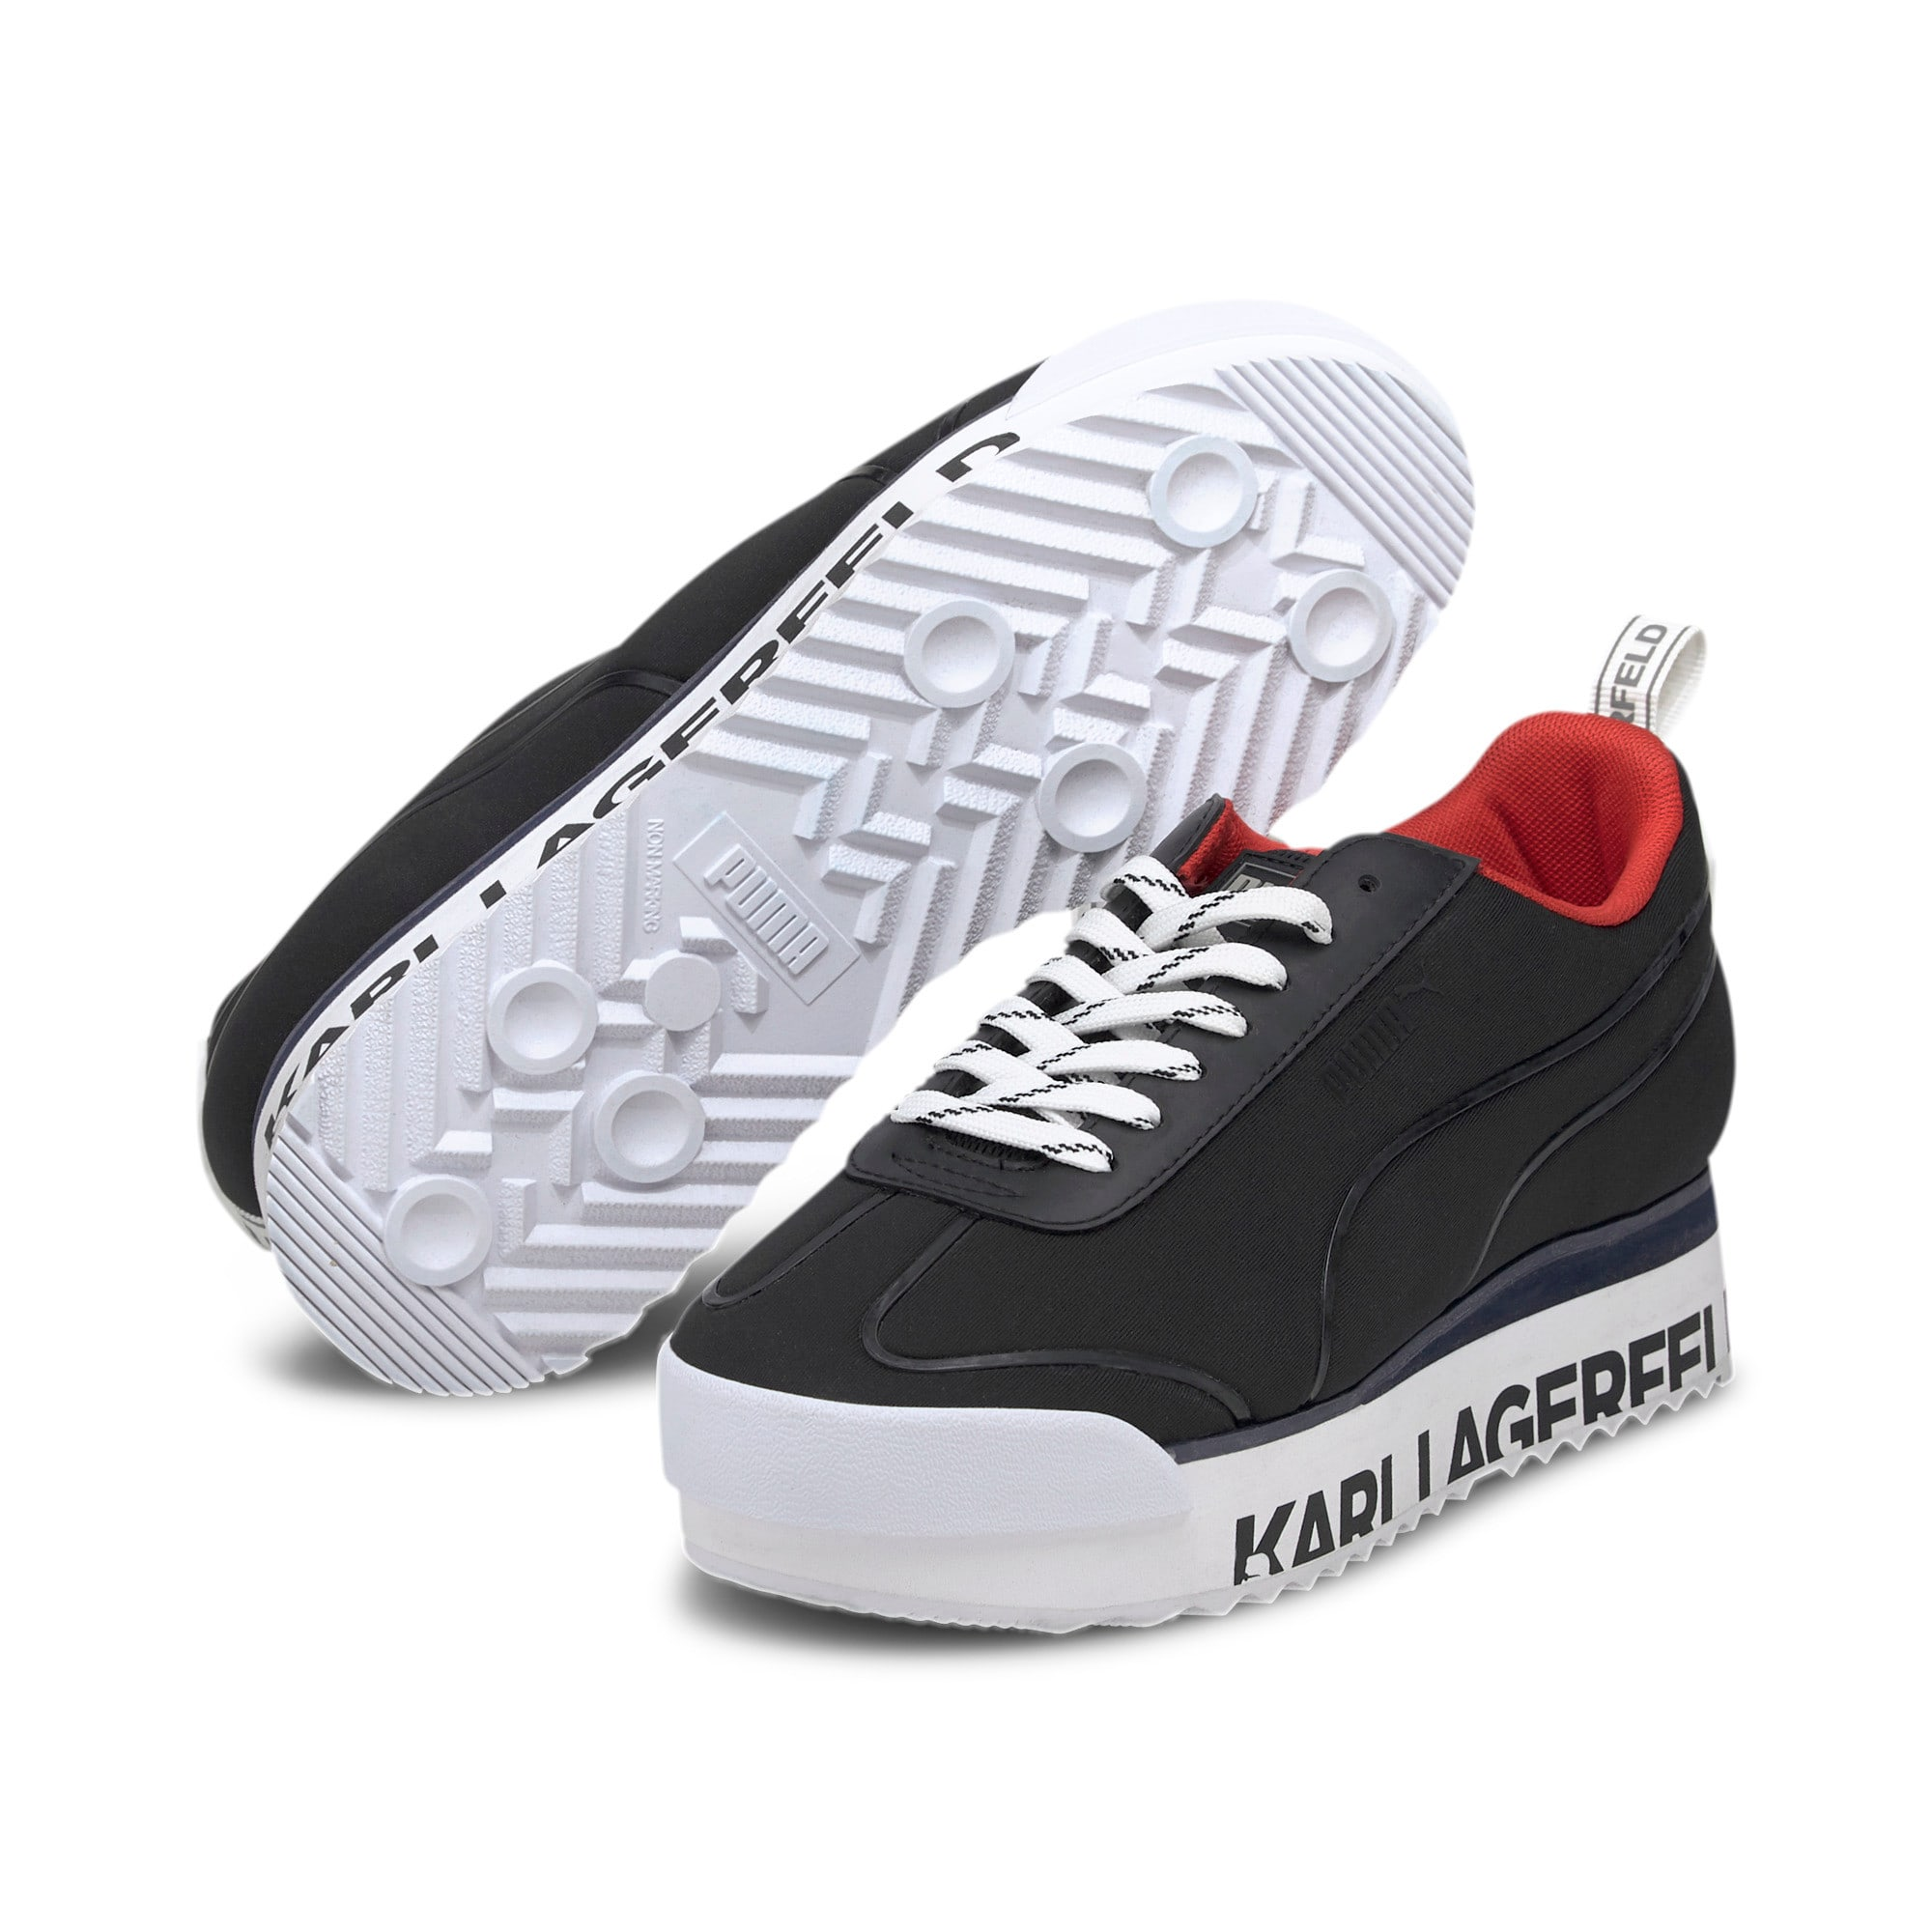 Thumbnail 3 of PUMA x KARL LAGERFELD Roma Amor Women's Trainers, Puma Black-Puma Black, medium